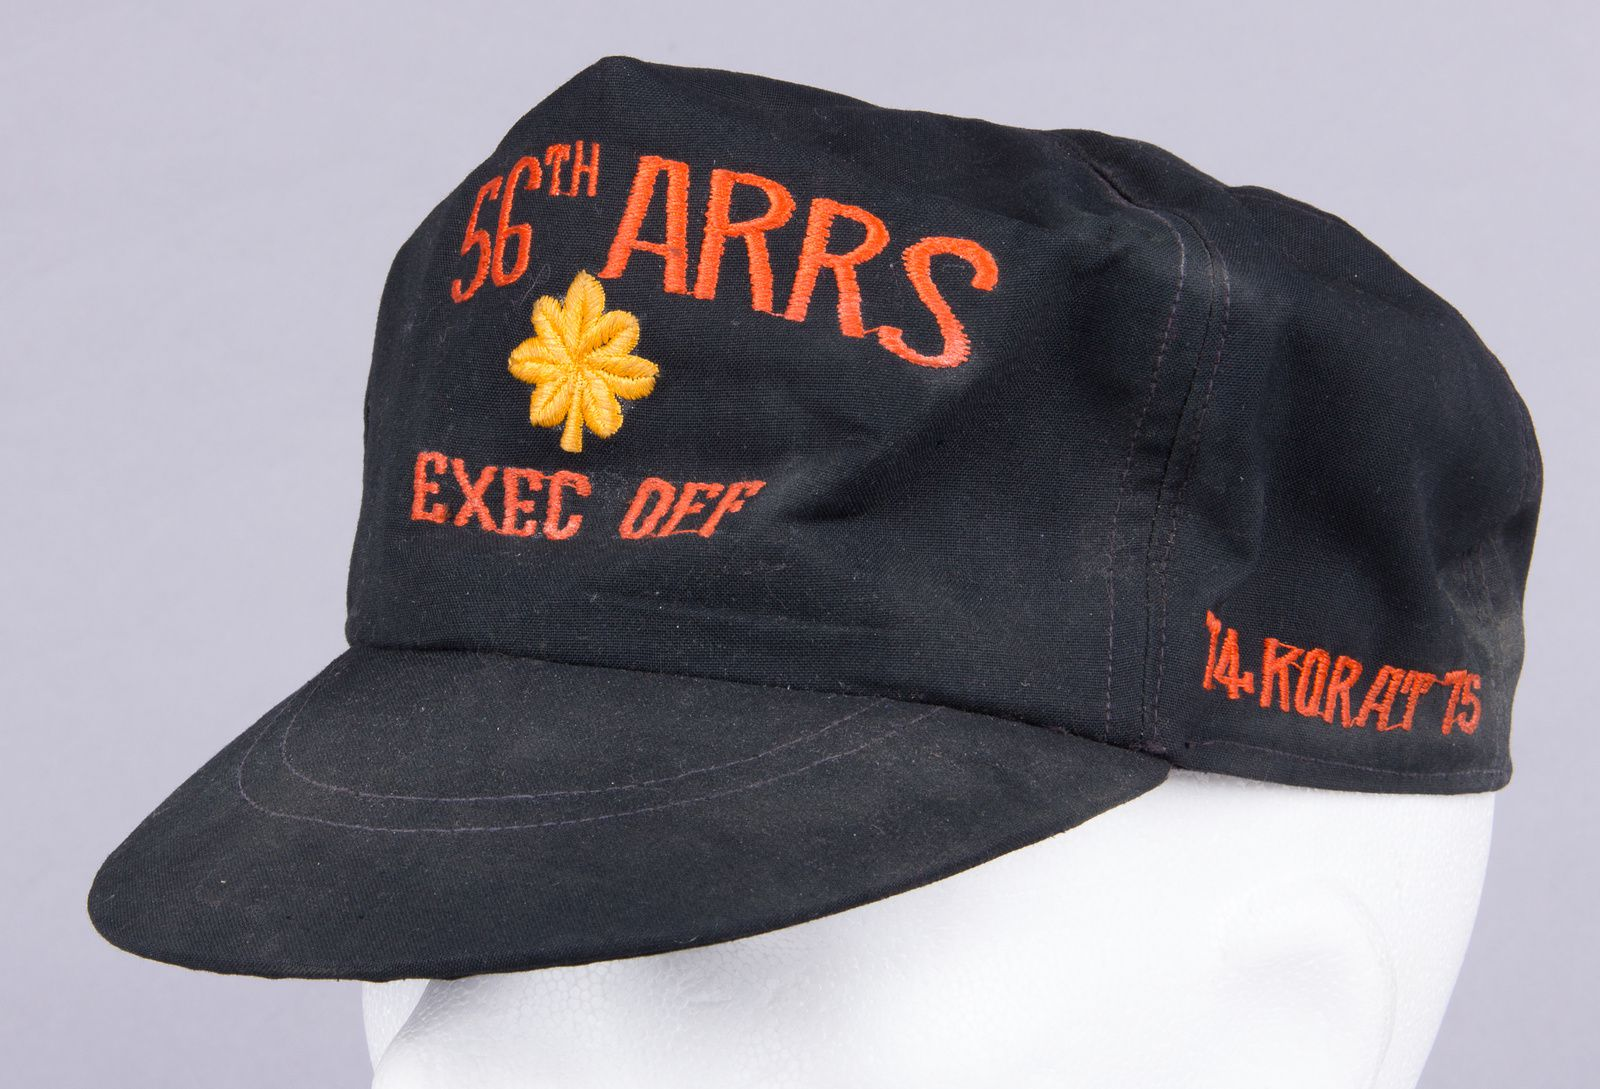 Maj. Michael was the Executive Officer of the squadron. The dusty local made cap had been packed with the uniform in a duffle bag since 1975.